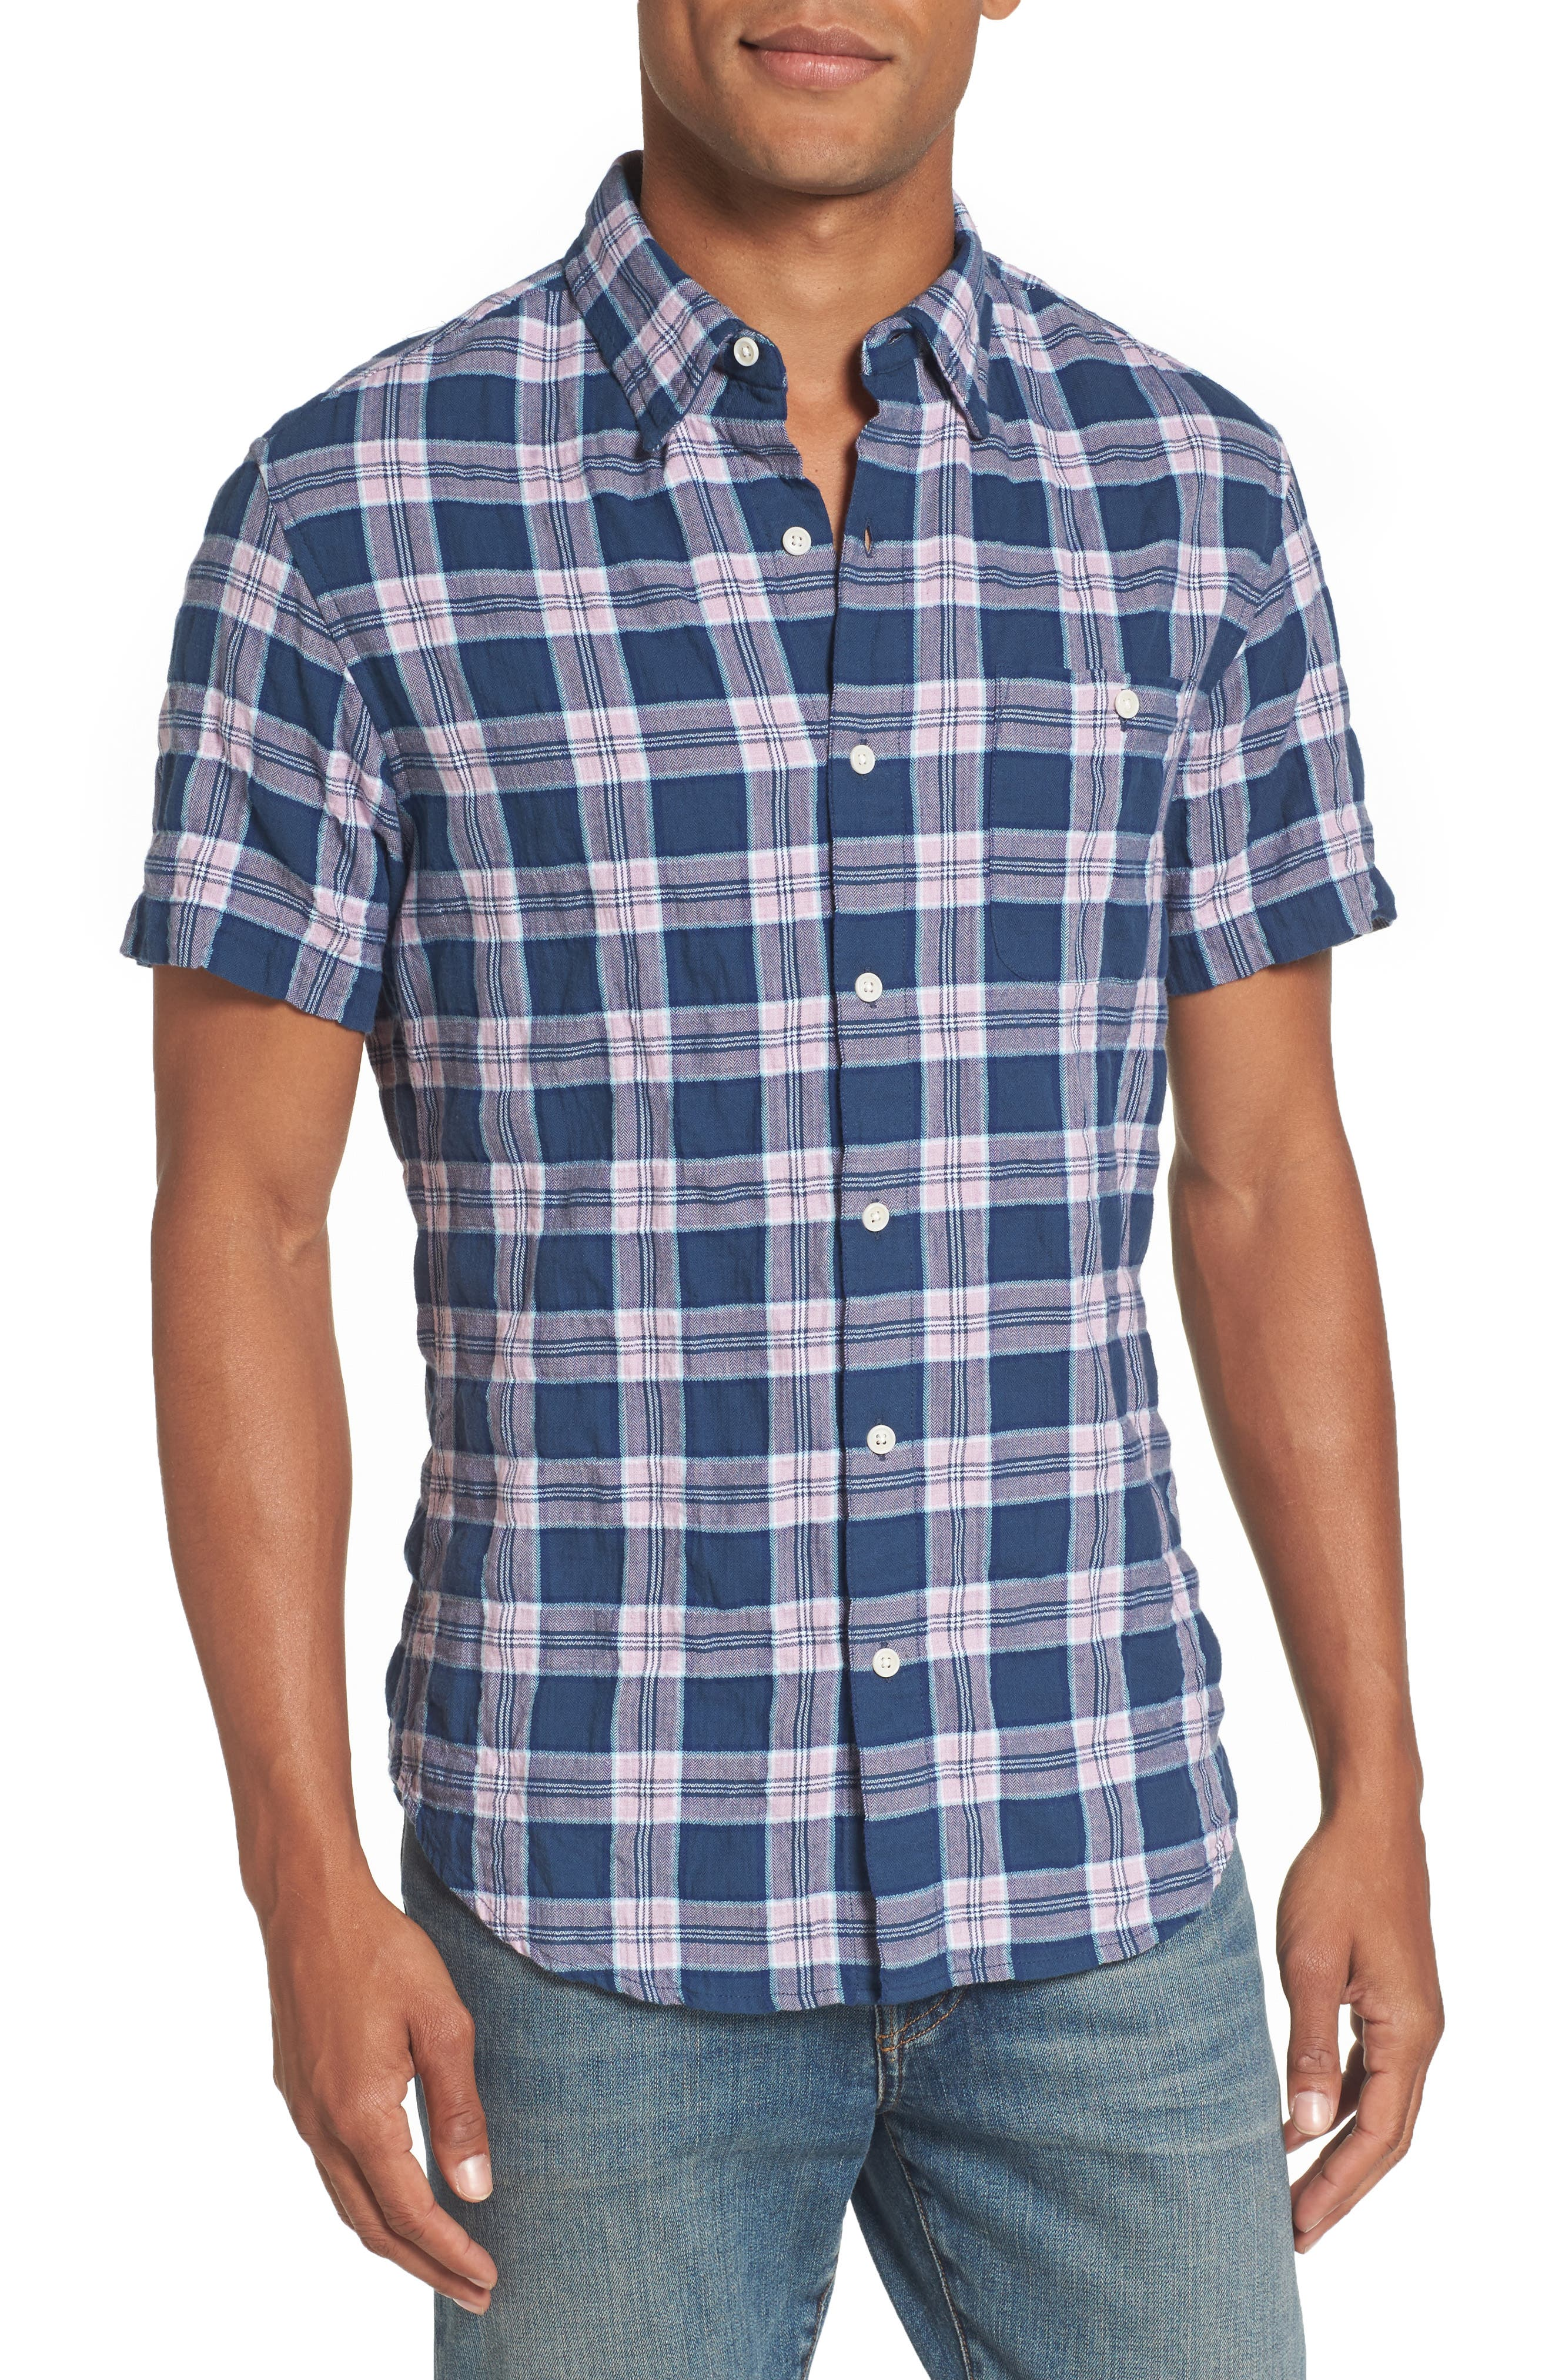 Riviera Slim Fit Plaid Woven Shirt,                         Main,                         color,